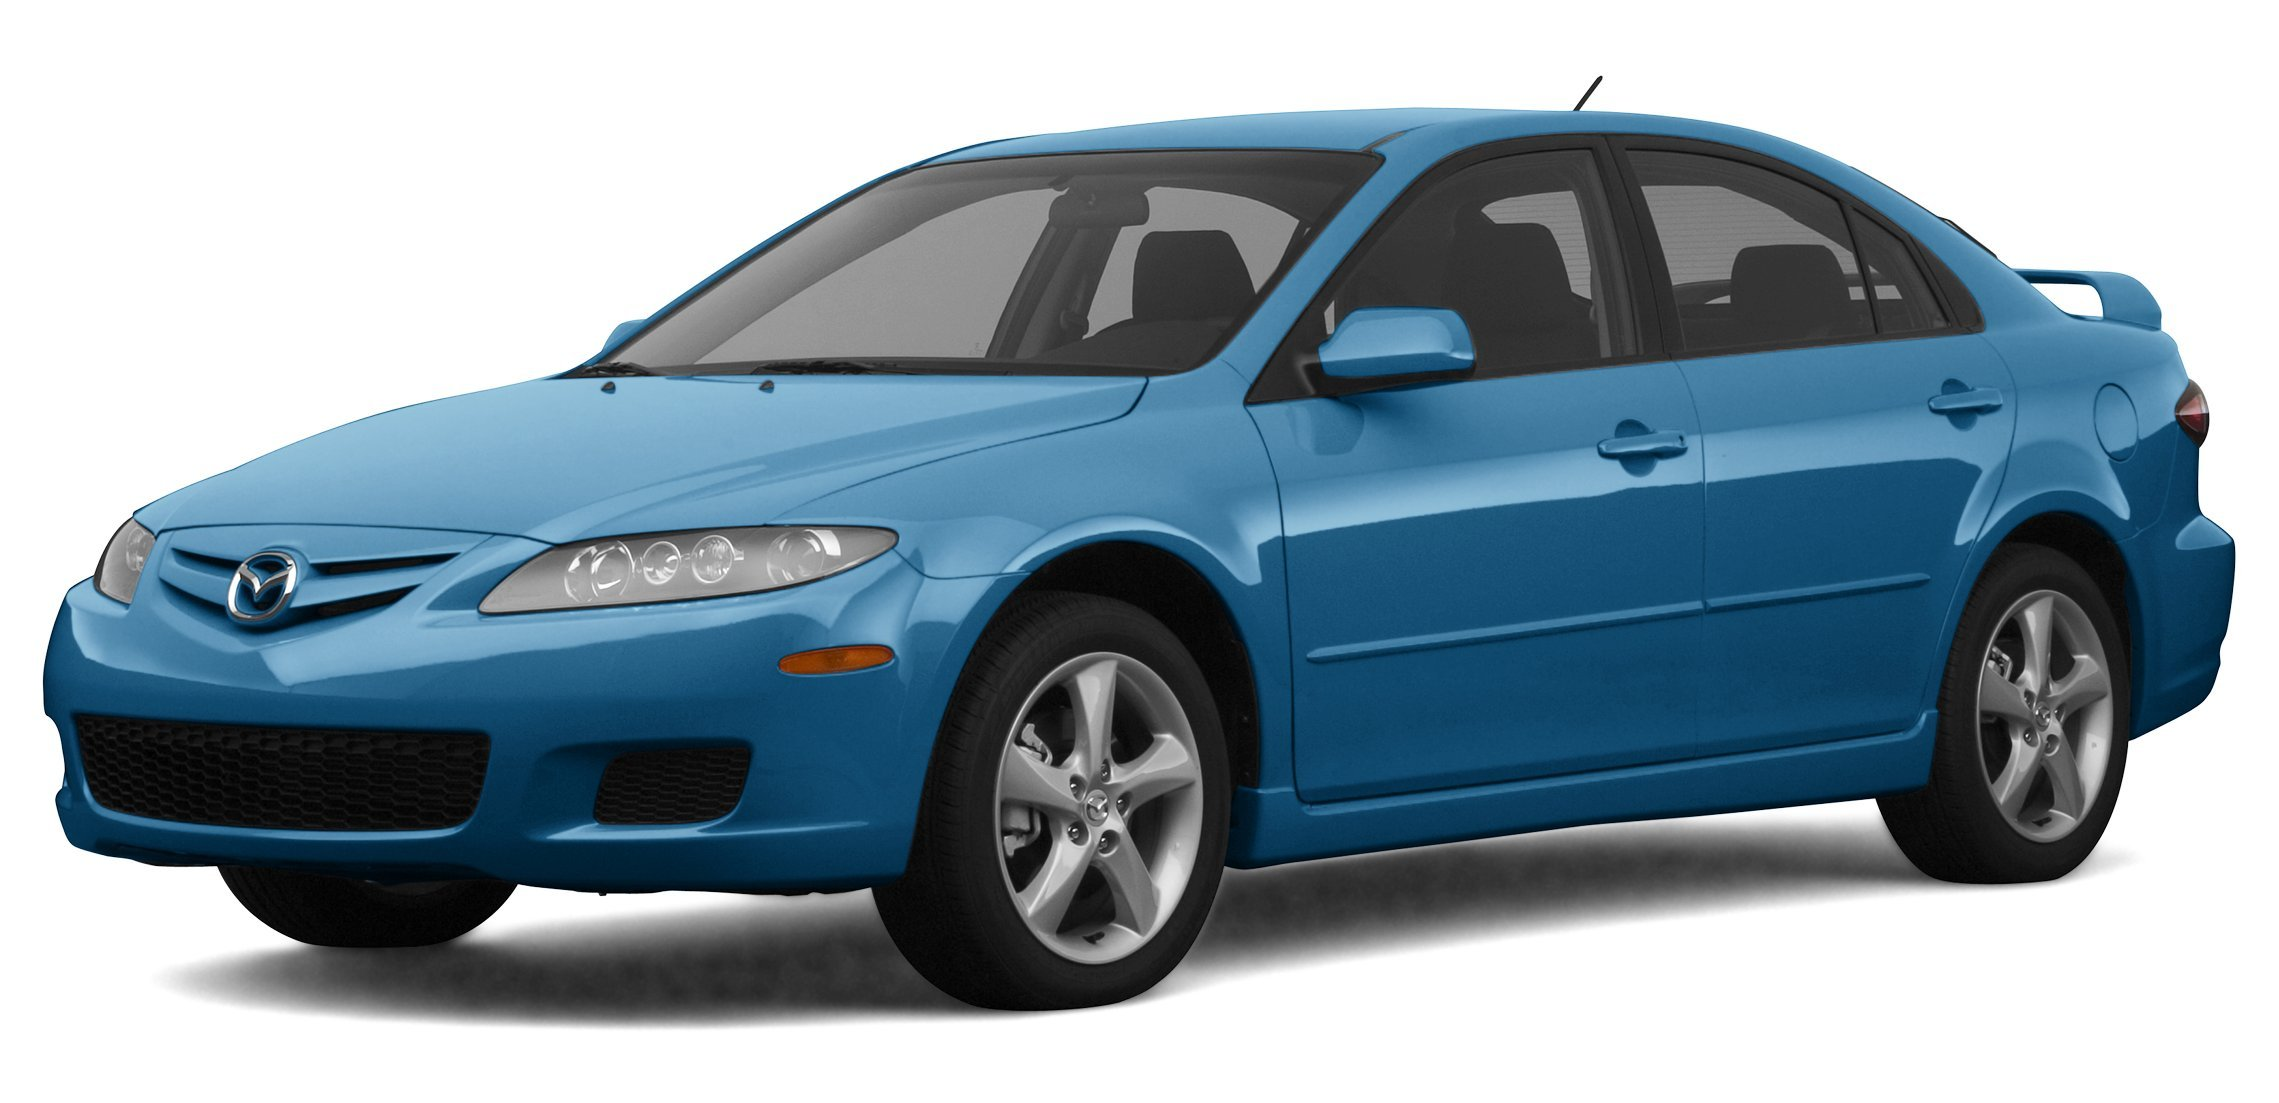 Amazon 2007 Pontiac Grand Prix Reviews and Specs Vehicles